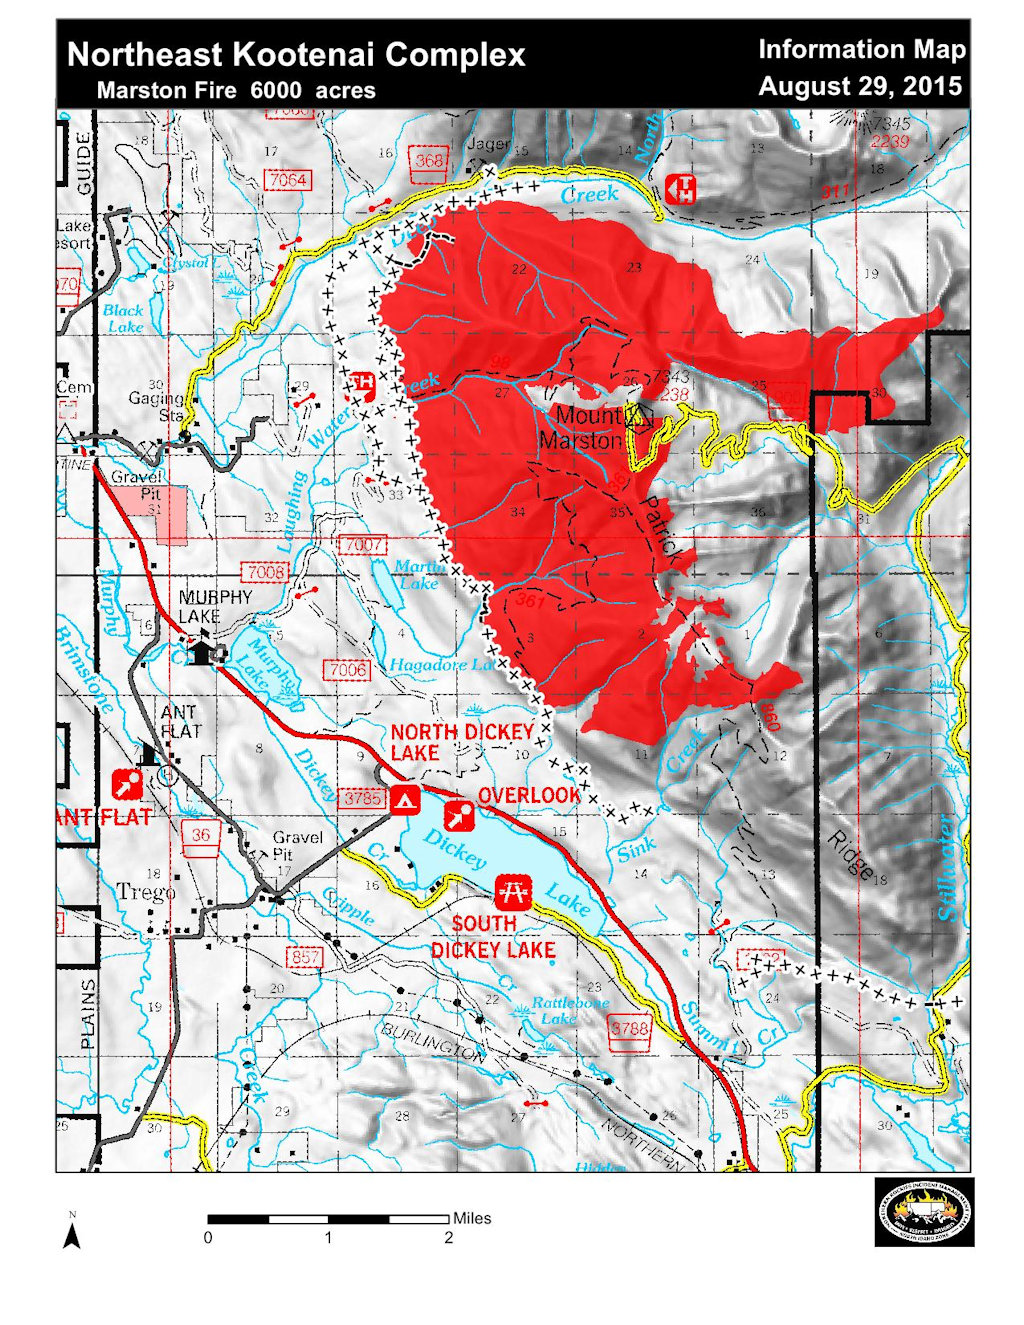 Marston Fire Information Map, Aug 29, 2015